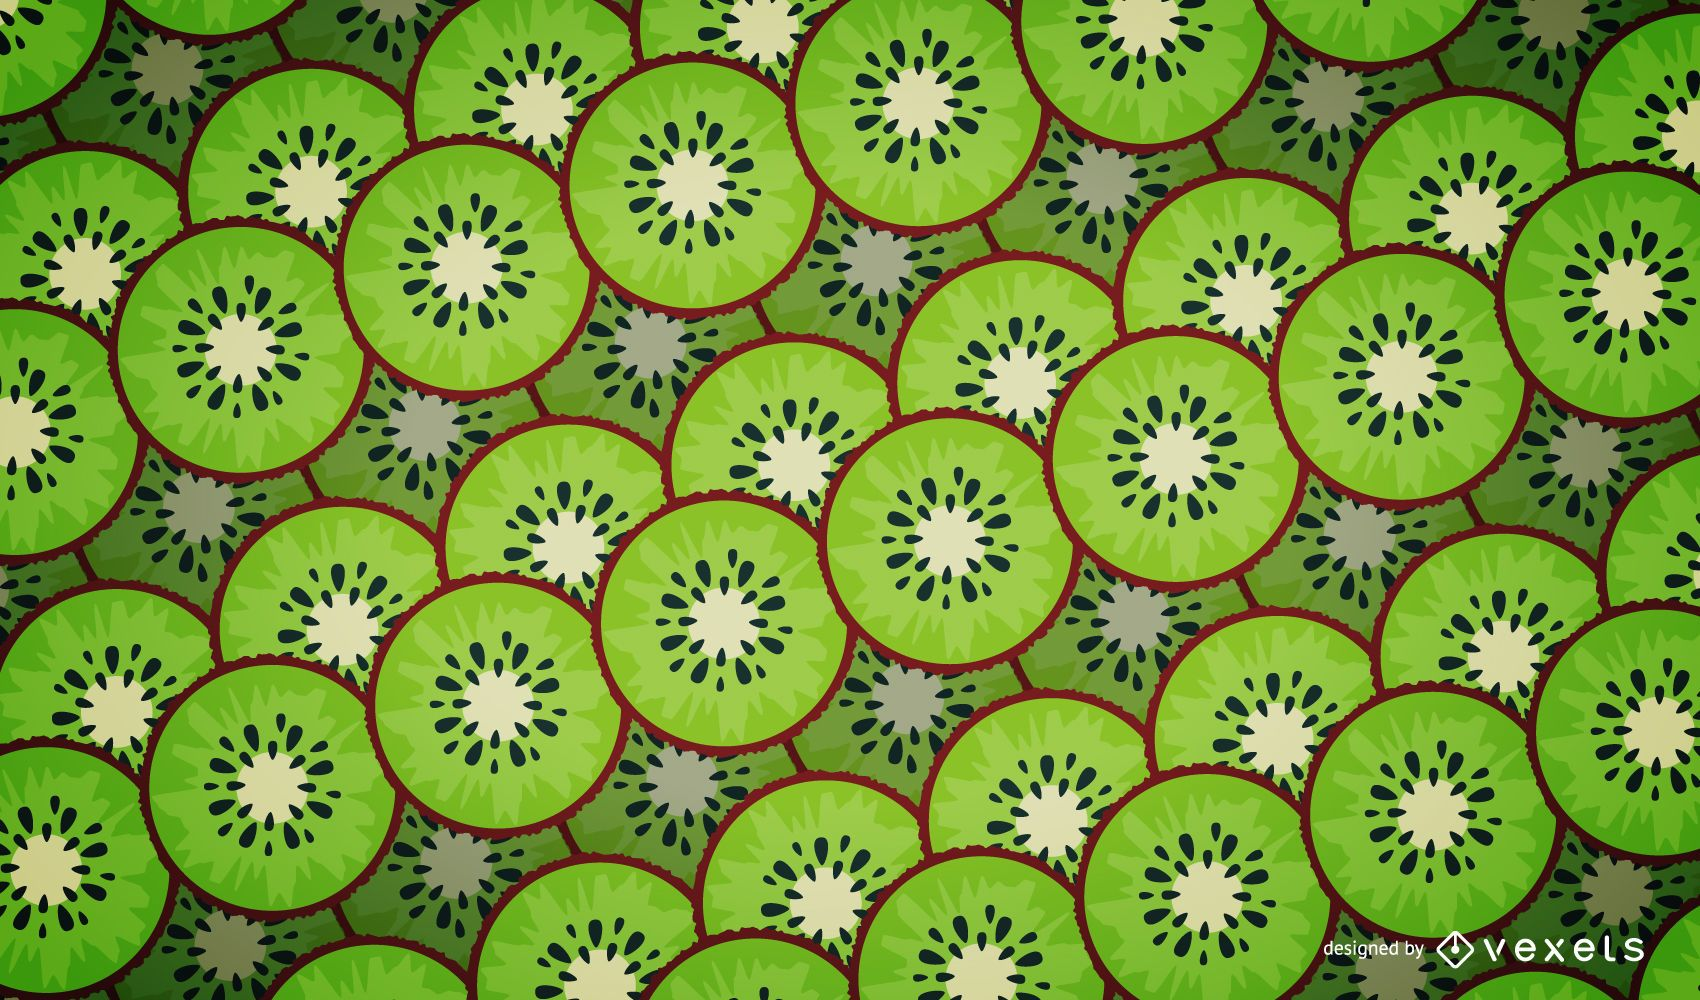 Illustrated kiwi pattern design - Vector download